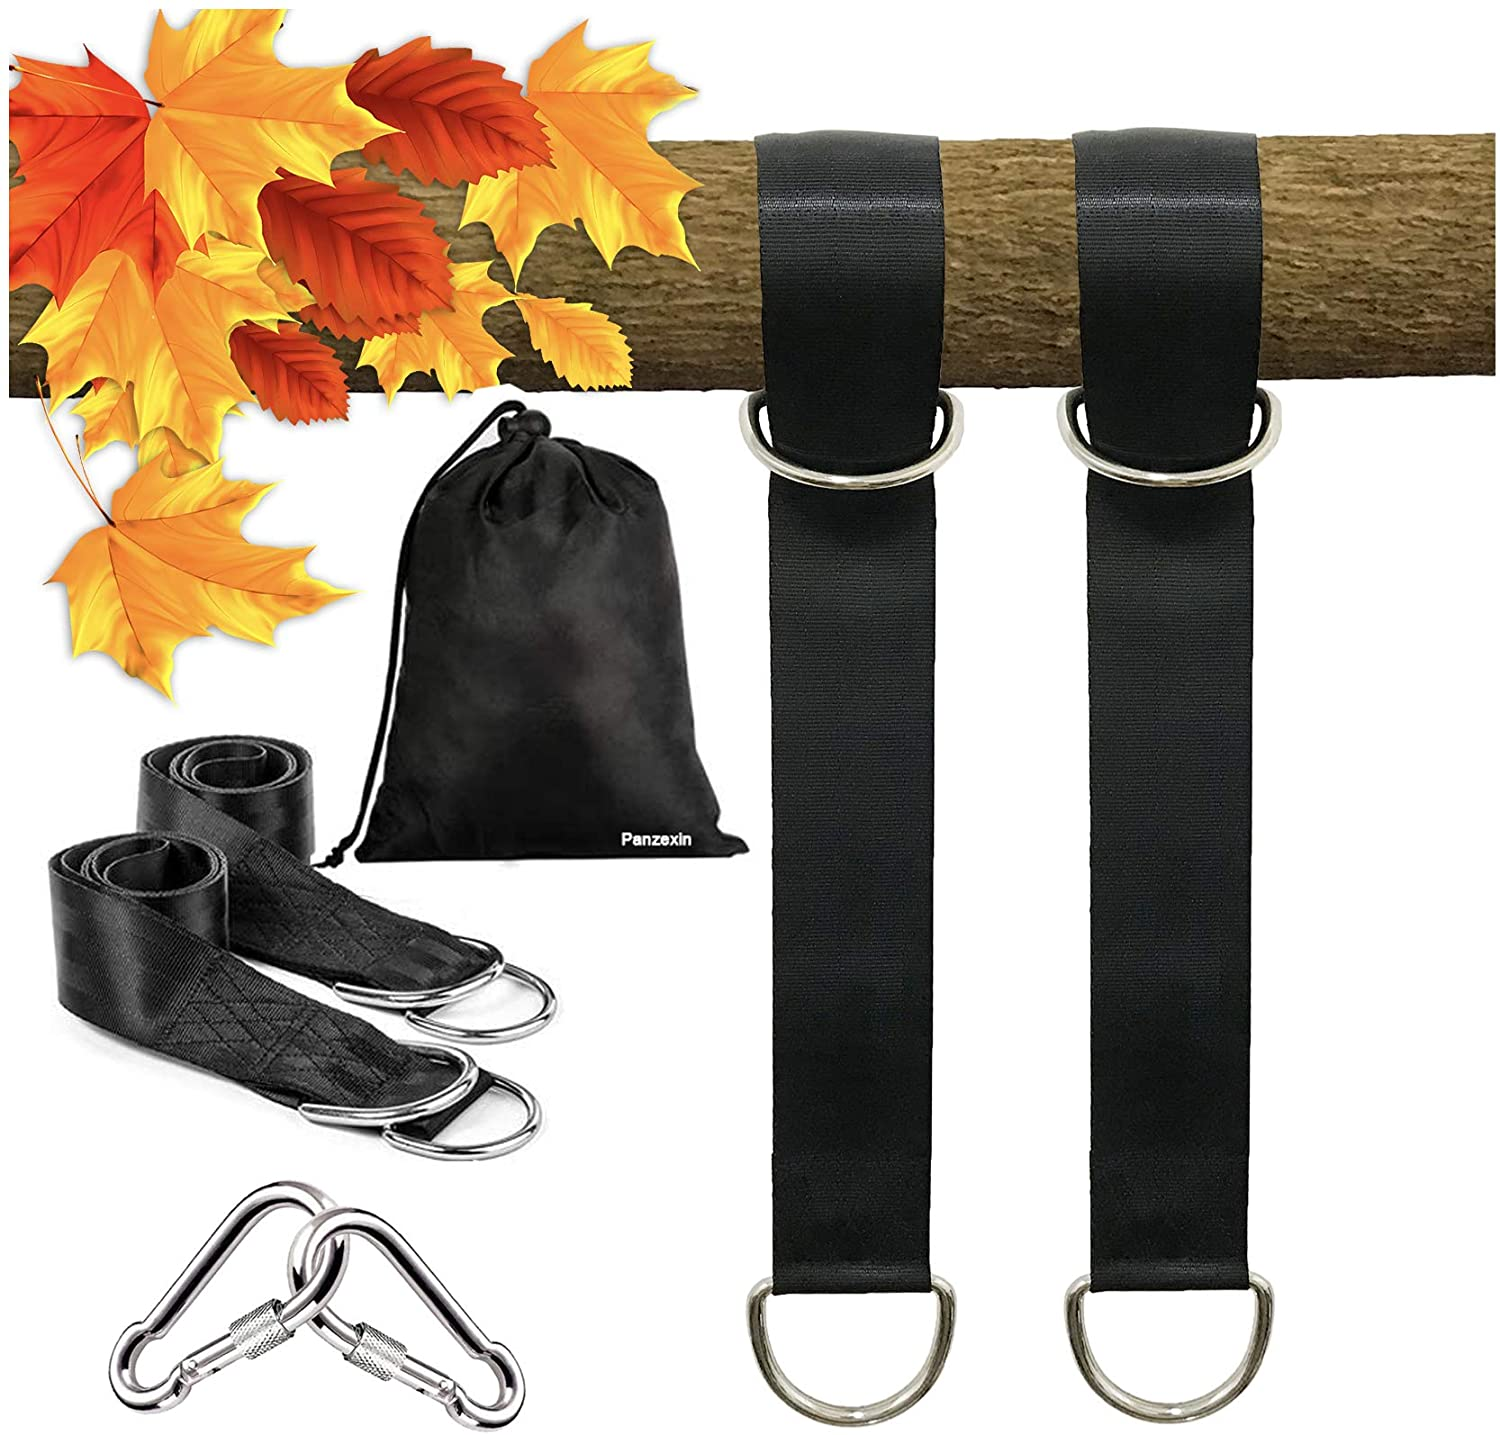 Panzexin Tree Swing Straps Hanging Kit, 4FT, Holds 2600 lbs, 2 Heavy Duty Carabiners Included, Outdoor Swing Hangers-Perfect for Hammocks, Tire and Saucer Swings with Easy Installation (4ft)